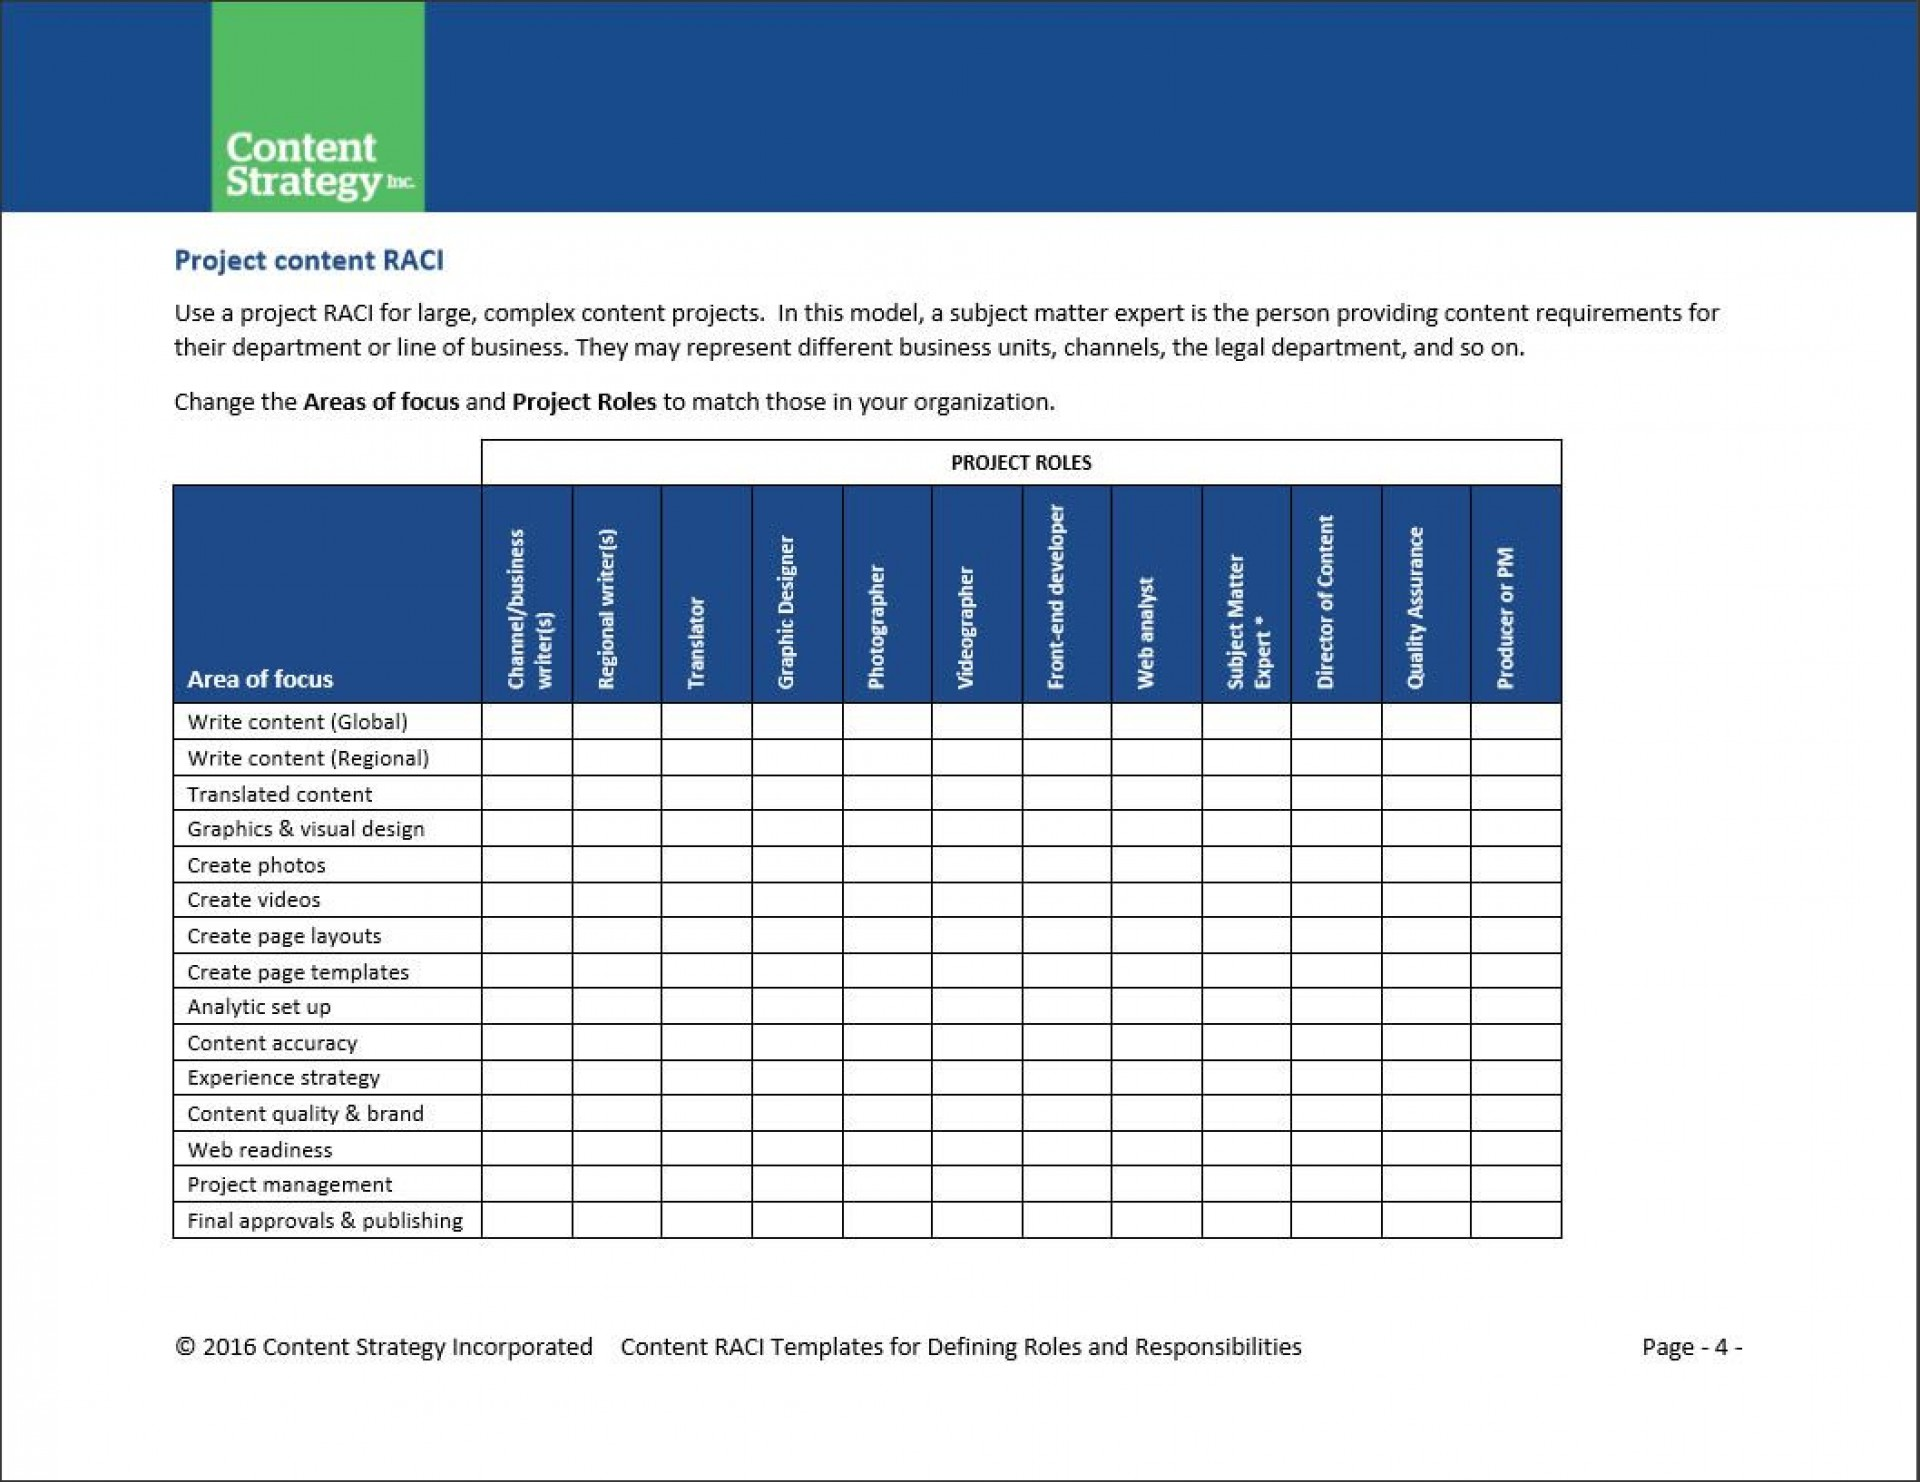 006 Excellent Role And Responsibilitie Template High Resolution  Employee Excel Google Doc1920